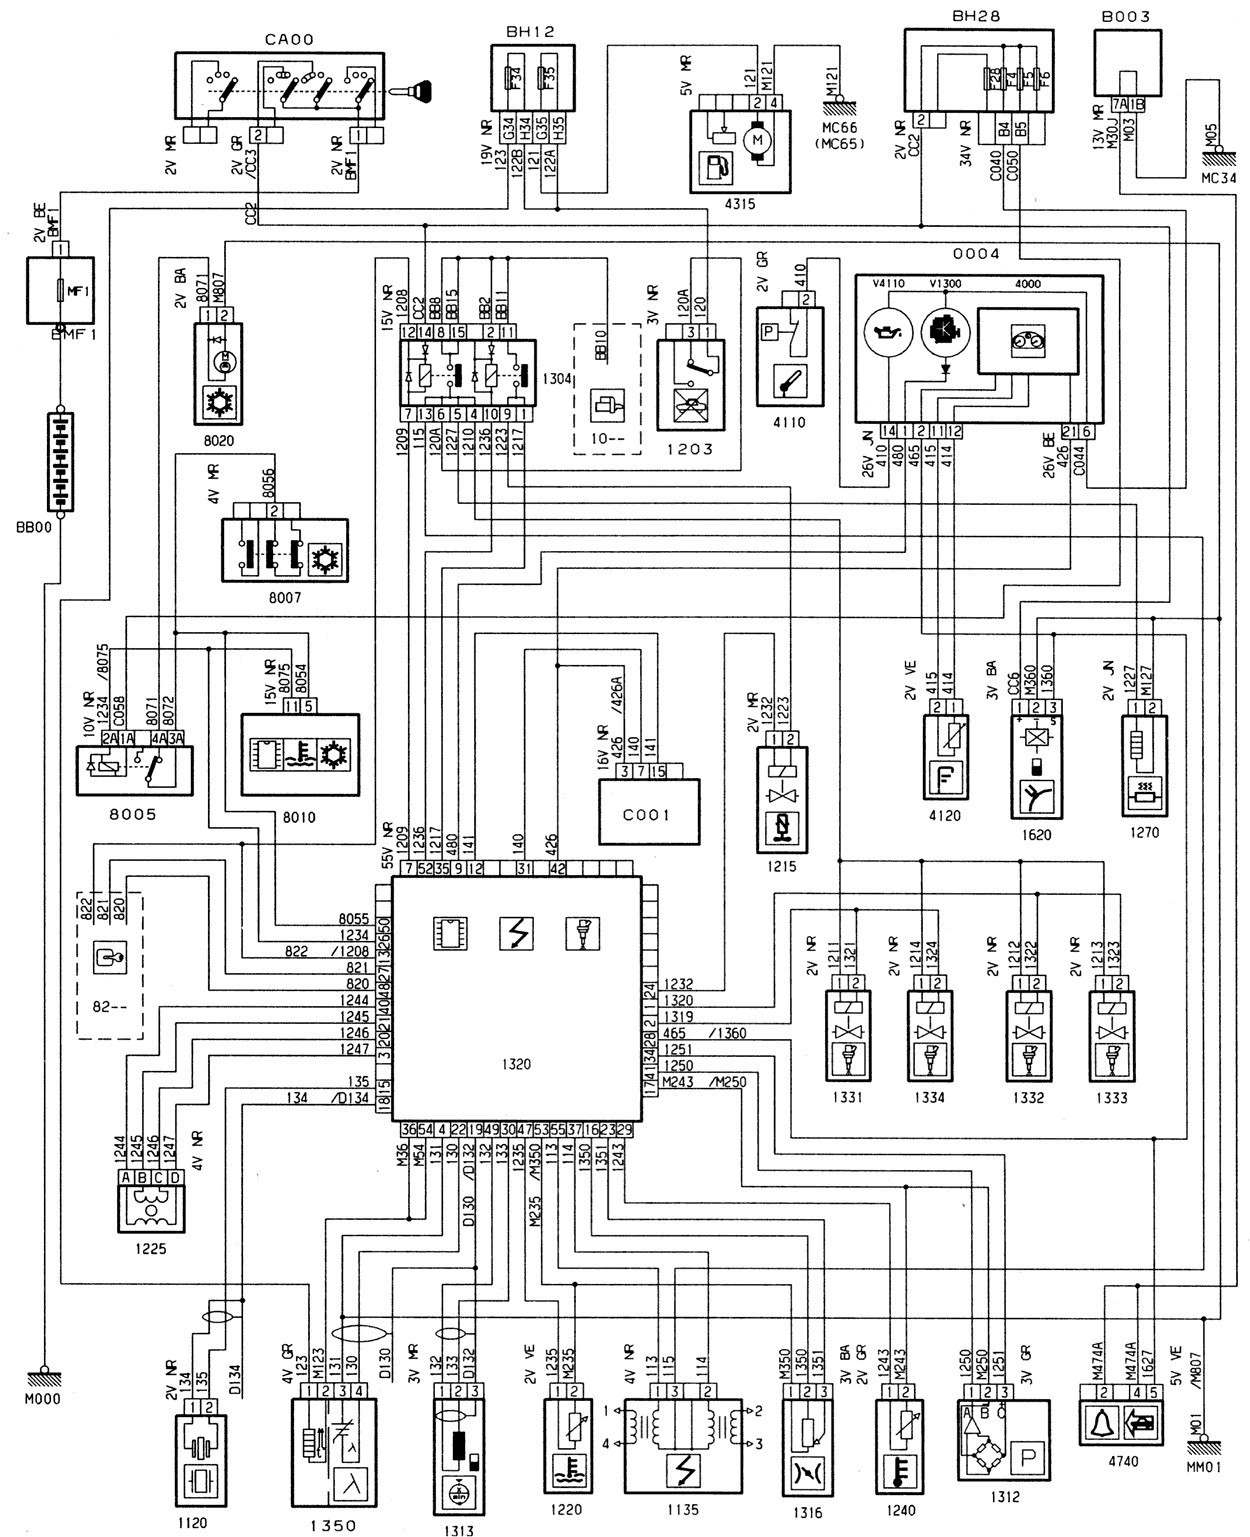 Peugeot 206 Engine Diagram Peugeot Wiring Diagrams Mesmerizing Afif Of  Peugeot 206 Engine Diagram 206 Gti